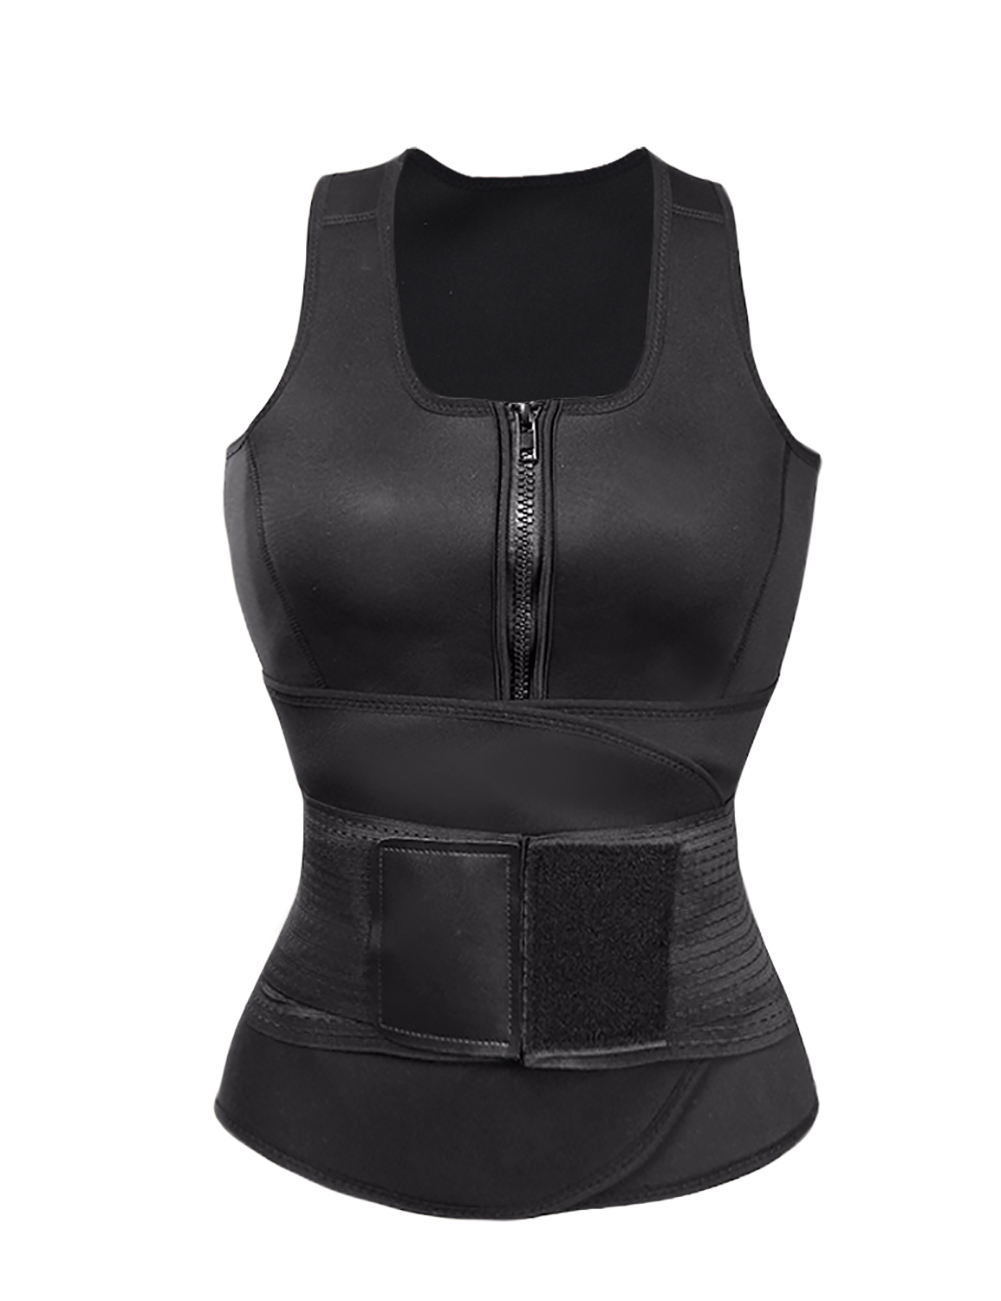 //cdn.affectcloud.com/hexinfashion/upload/imgs/Shapewear/Neoprene_Waist_Trainer/LB4977/LB4977-201911115dc8c3b2c1f5d.jpg